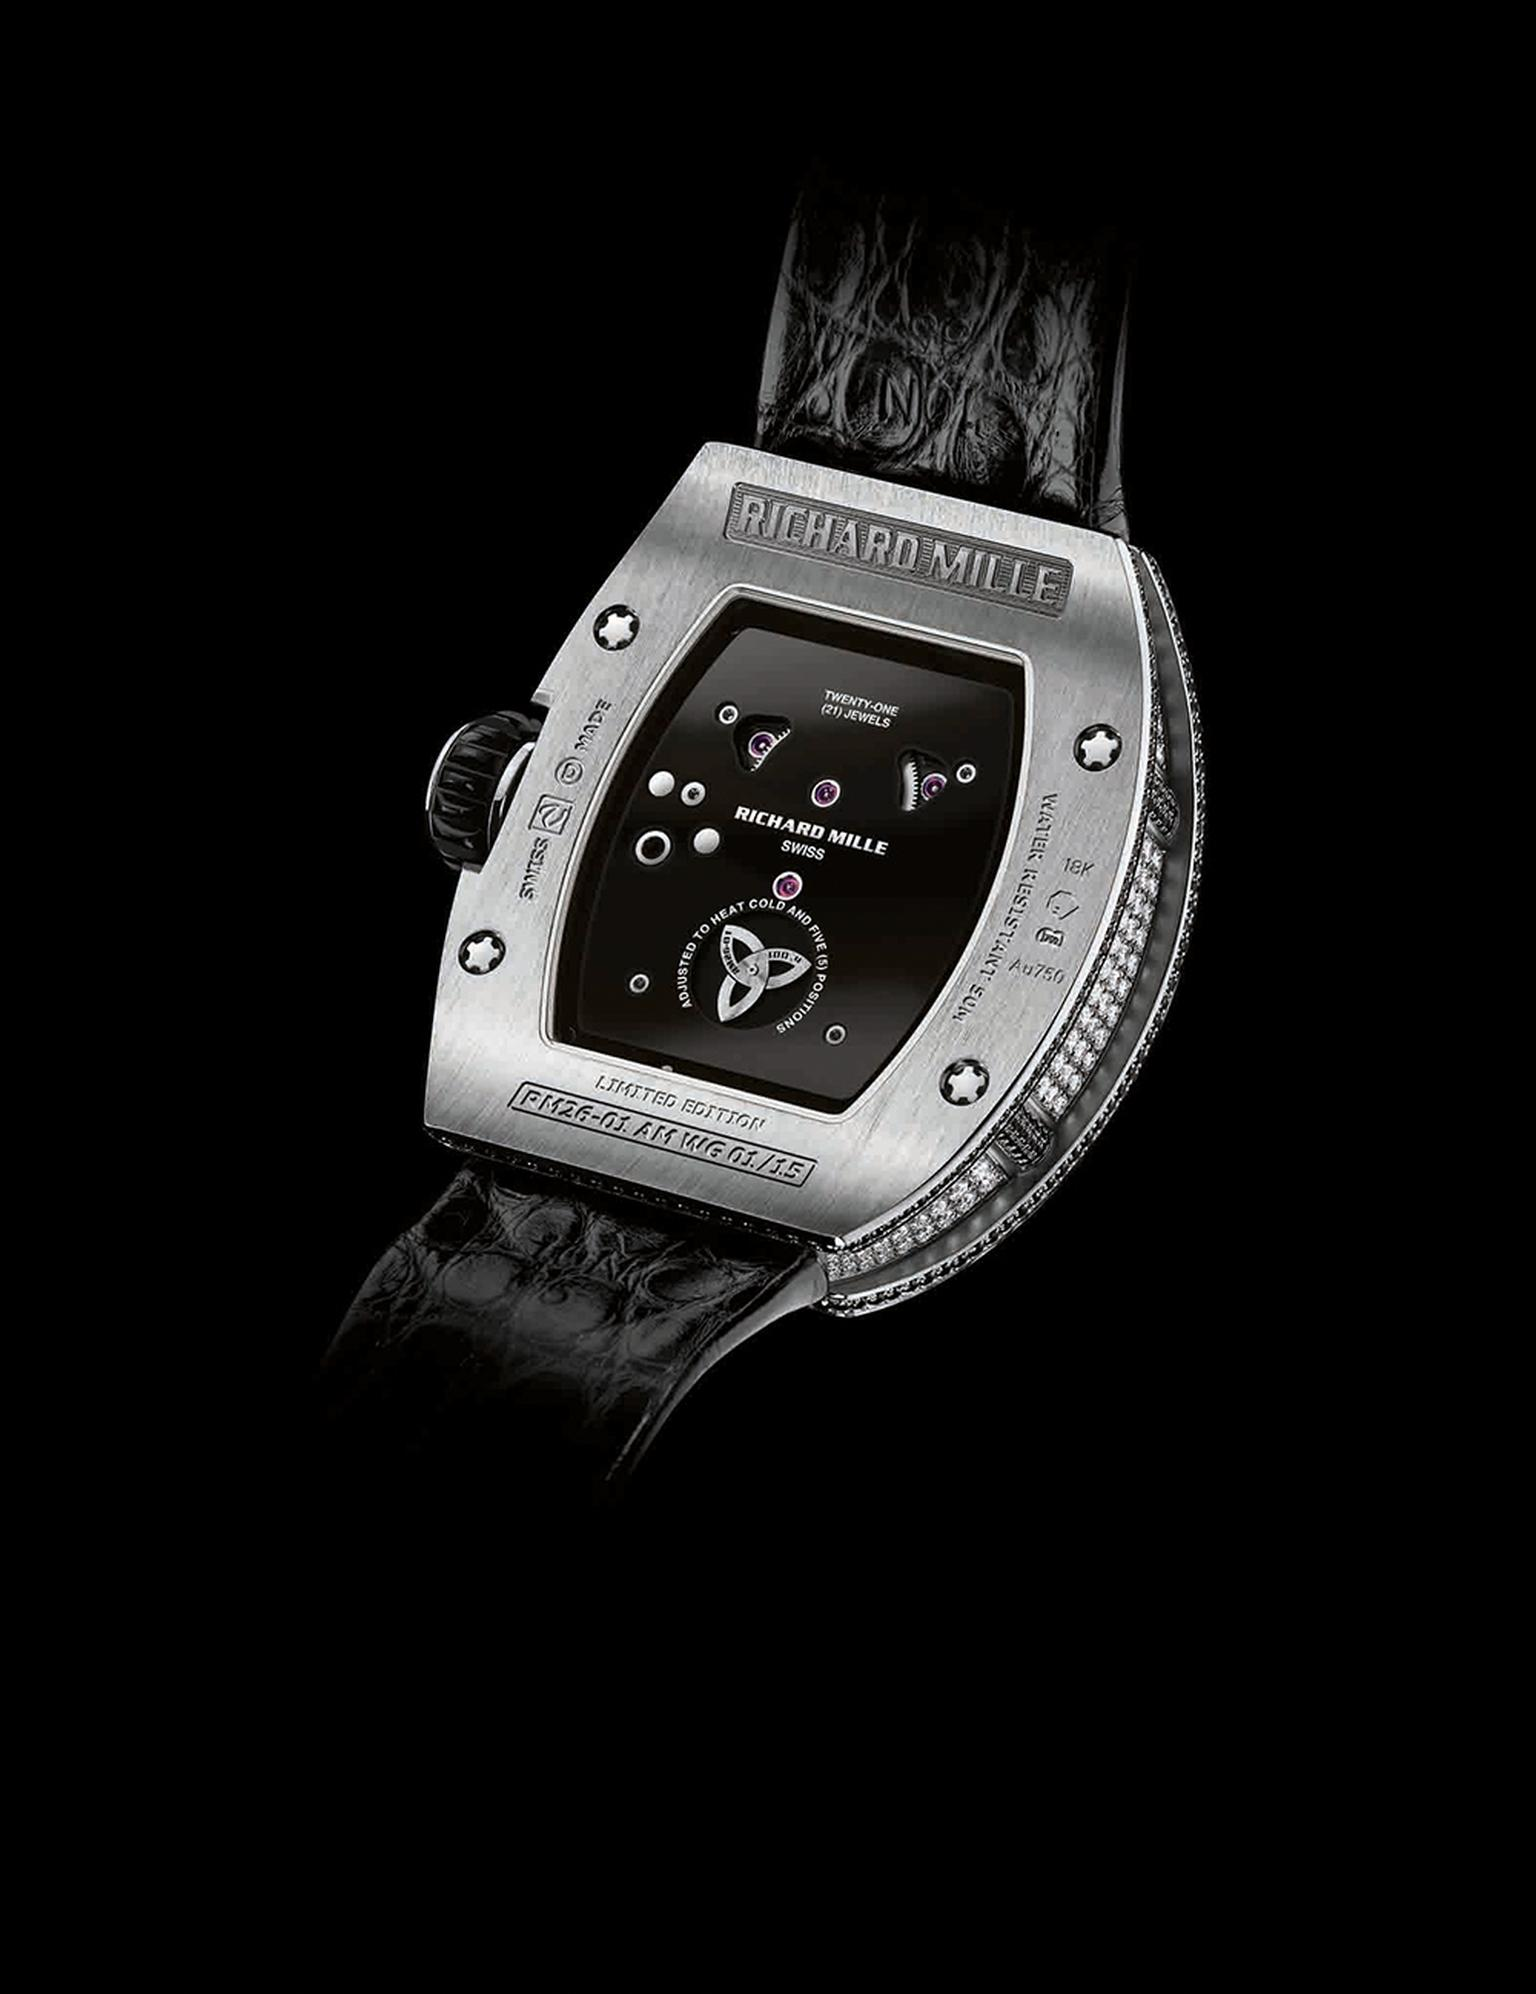 RichardMille2601